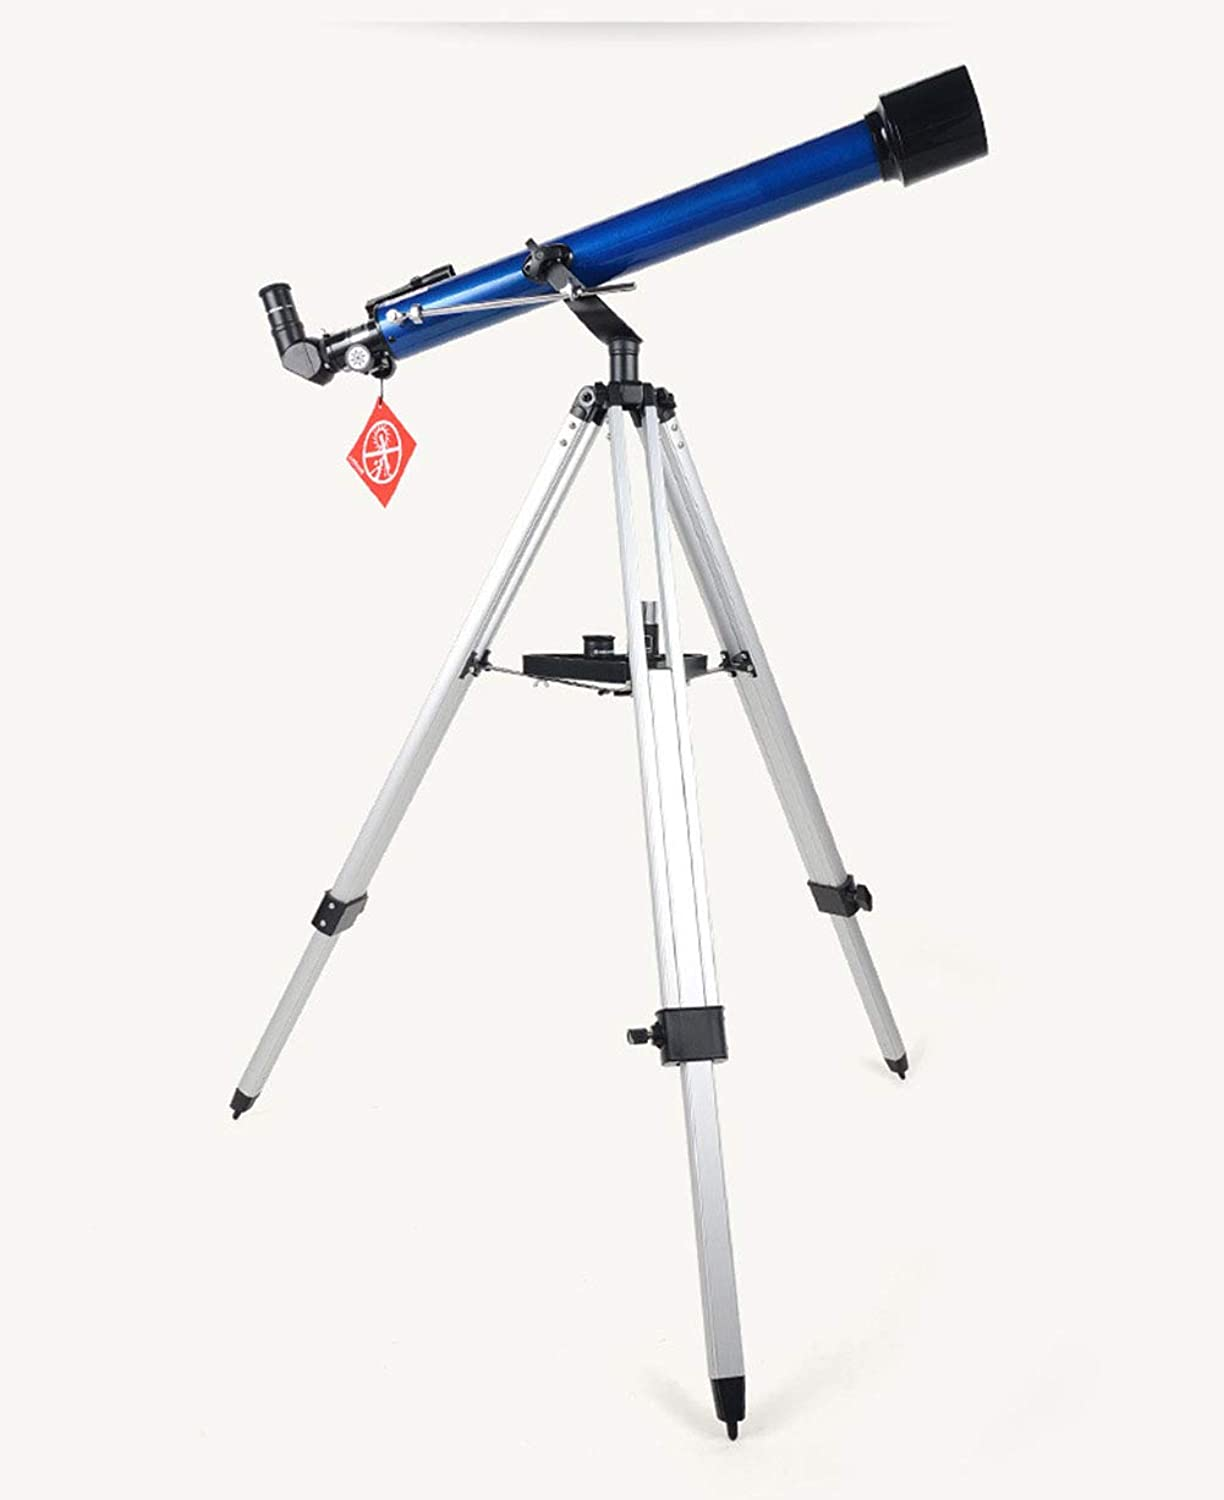 IGPG Ce7-519 ultra-clear refracting telescope with tripod is the Beste choice for exploring the sky